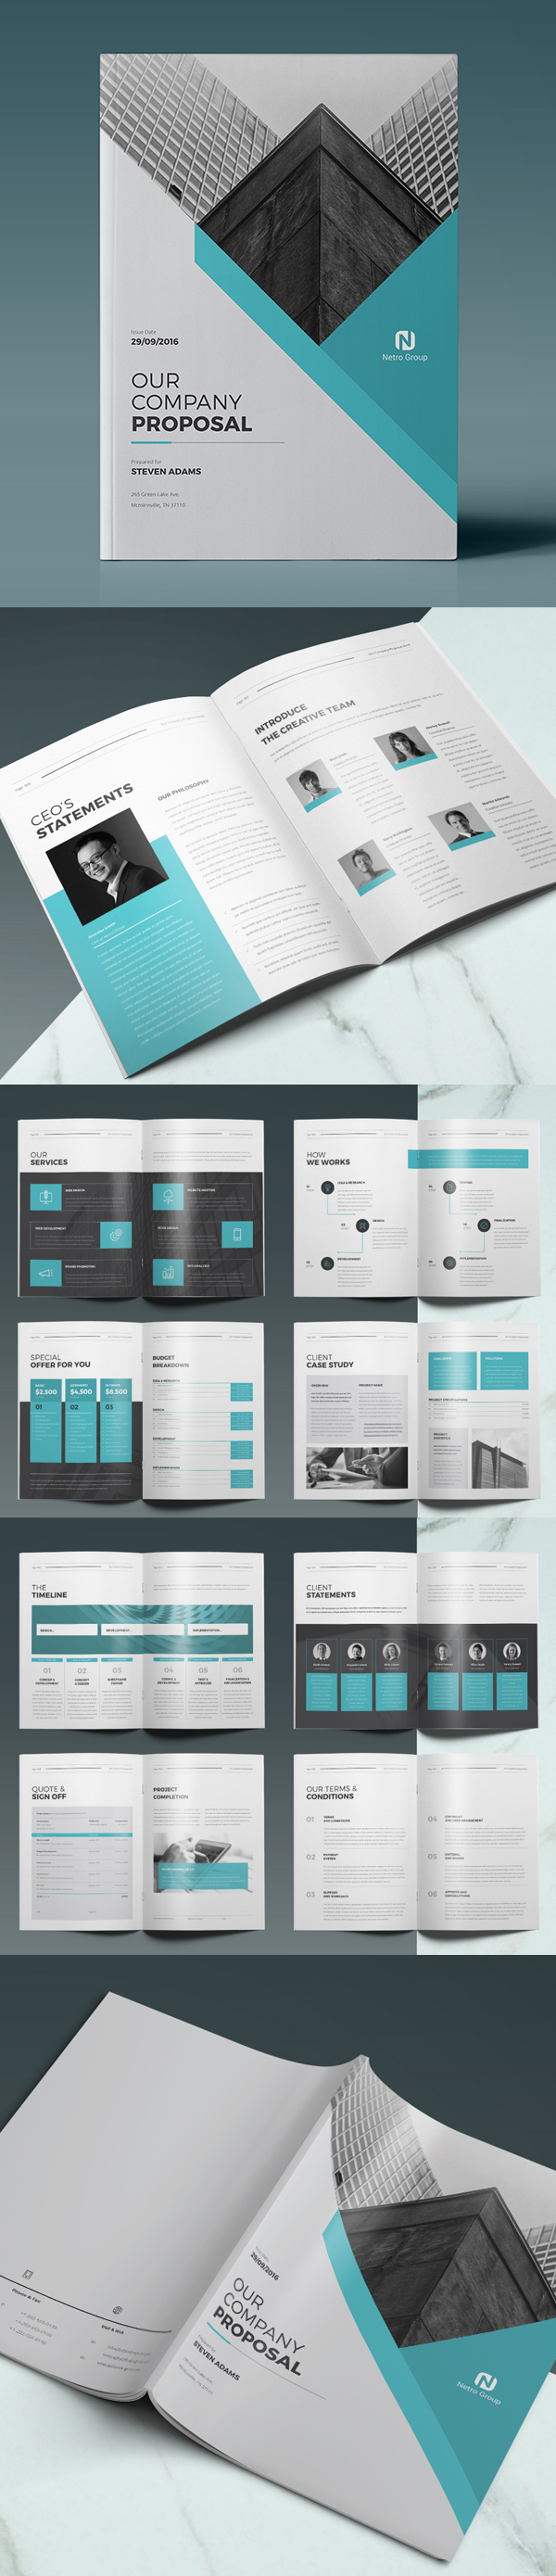 100 Professional Corporate Brochure Templates - 4